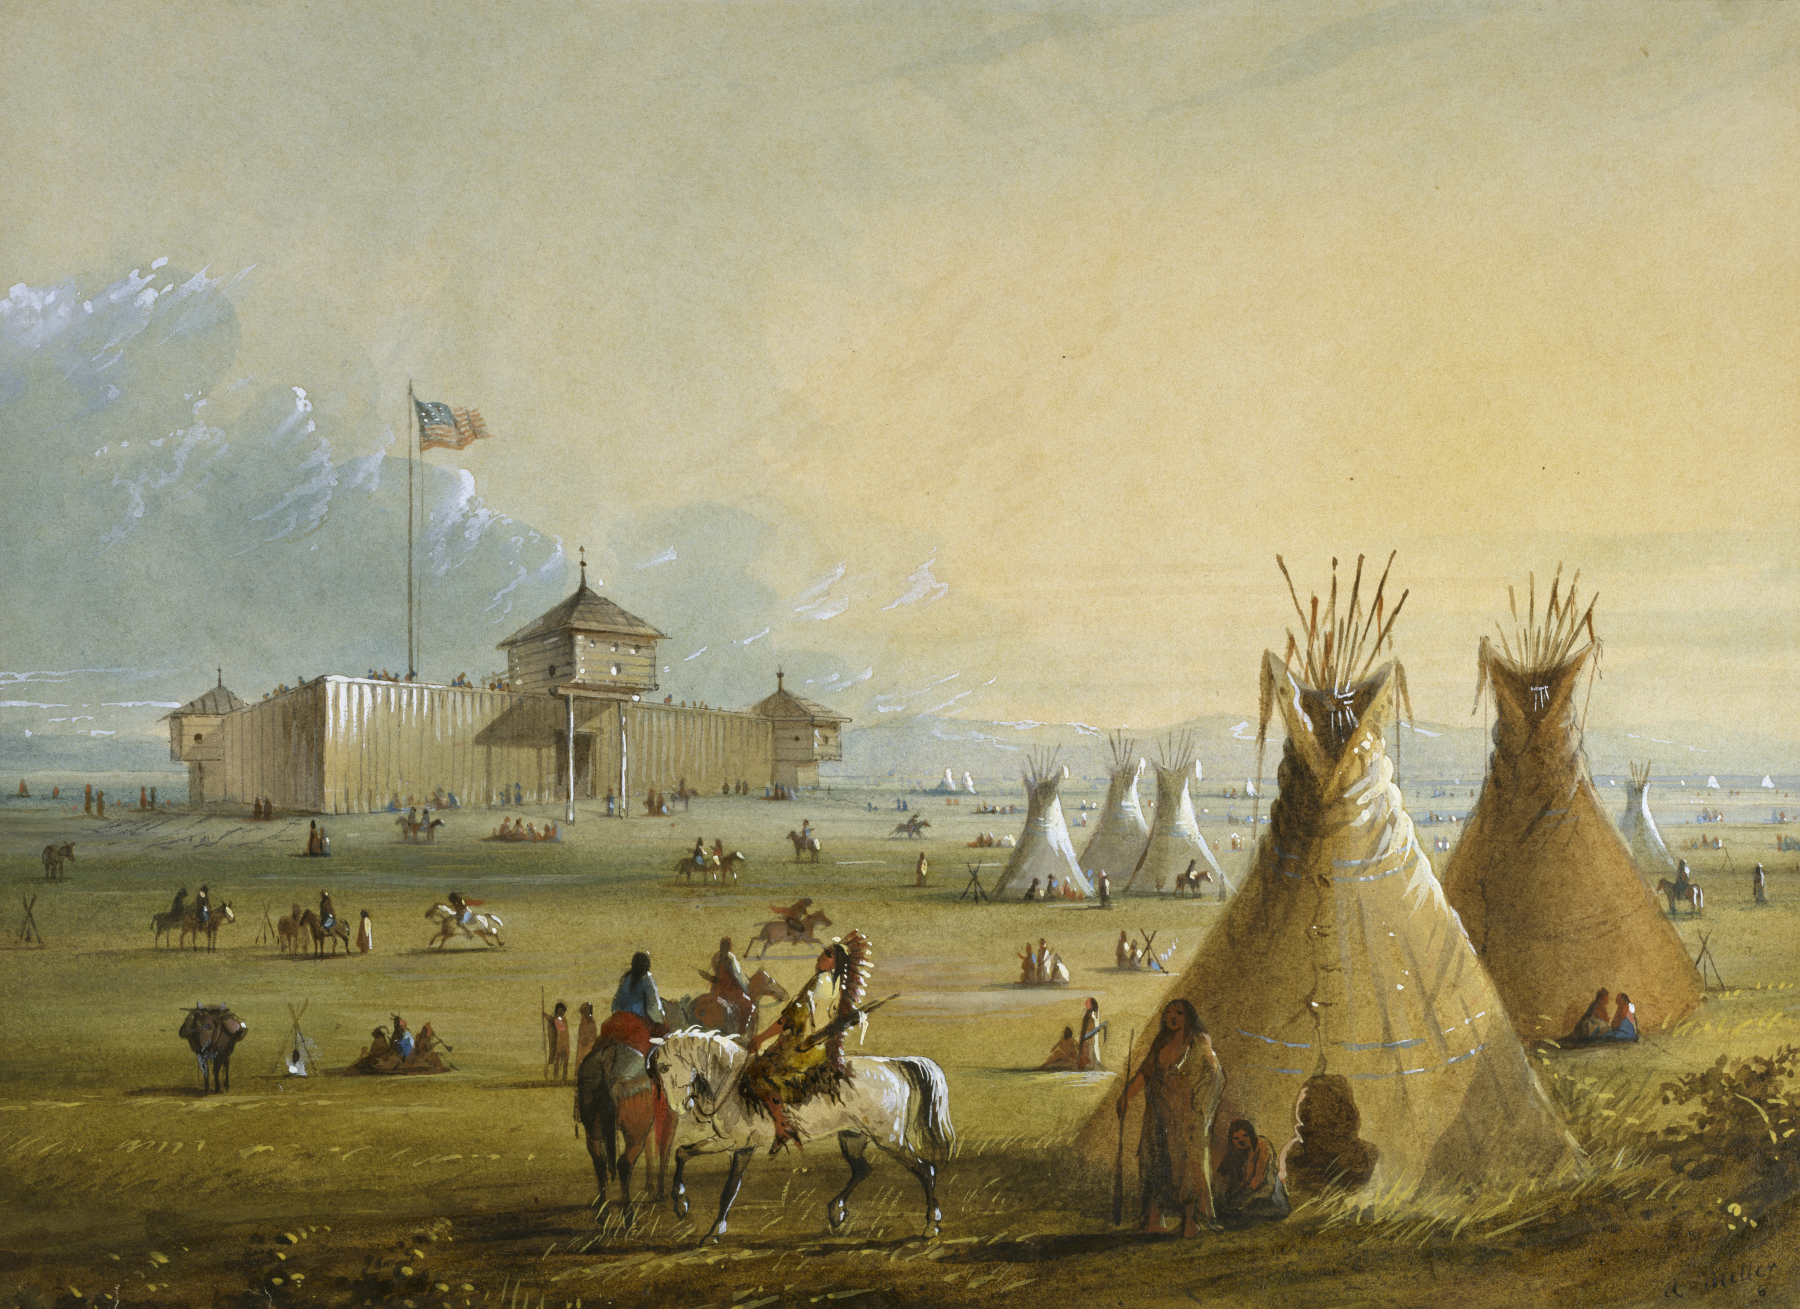 """Founded by William Sublette and Robert Campbell, Fort Laramie lay at the crossroads of an old north-south Indian trail and what became known as the Oregon Trail.  Here you see the often uncomfortable clash of native and European cultures.  """"Fort Laramie""""   by Alfred Jacob Miller. Wikicommons."""